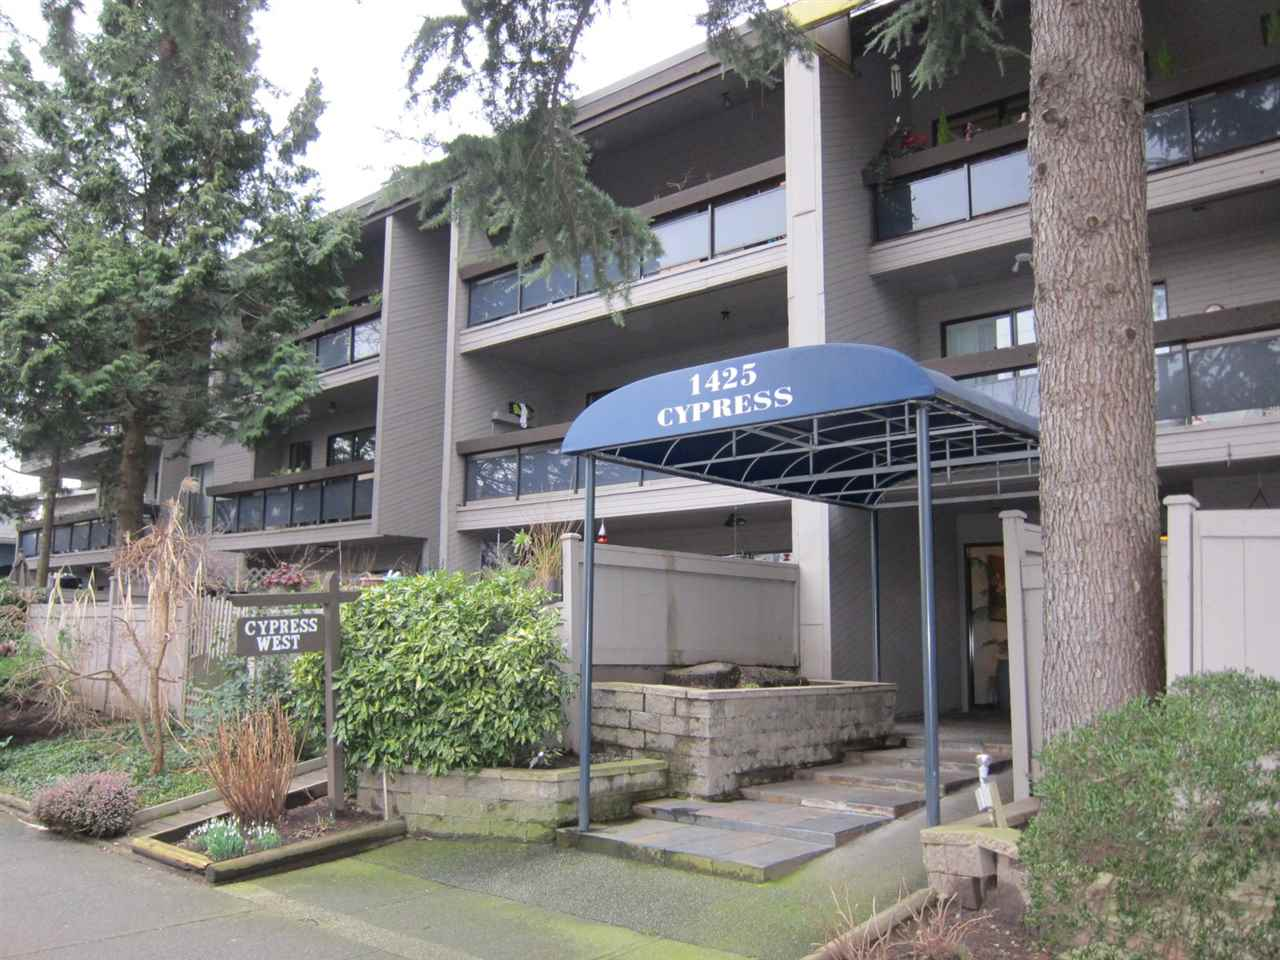 "Main Photo: 208 1425 CYPRESS Street in Vancouver: Kitsilano Condo for sale in ""CYPRESS WEST"" (Vancouver West)  : MLS® # R2039250"